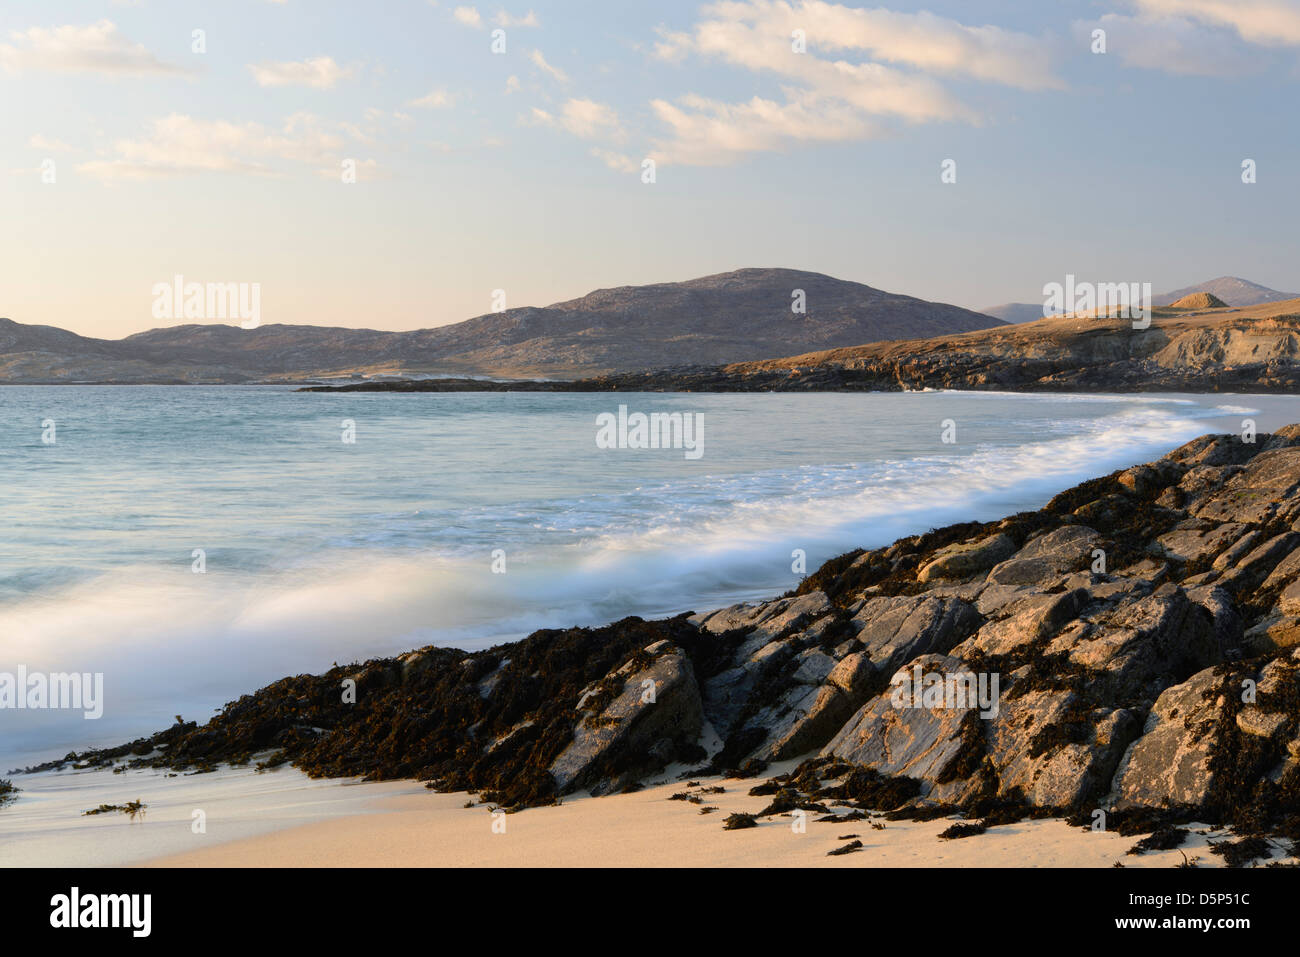 Waves crash upon the rocks at Traigh Lar on the Isle Harris, Outer Hebrides - Stock Image